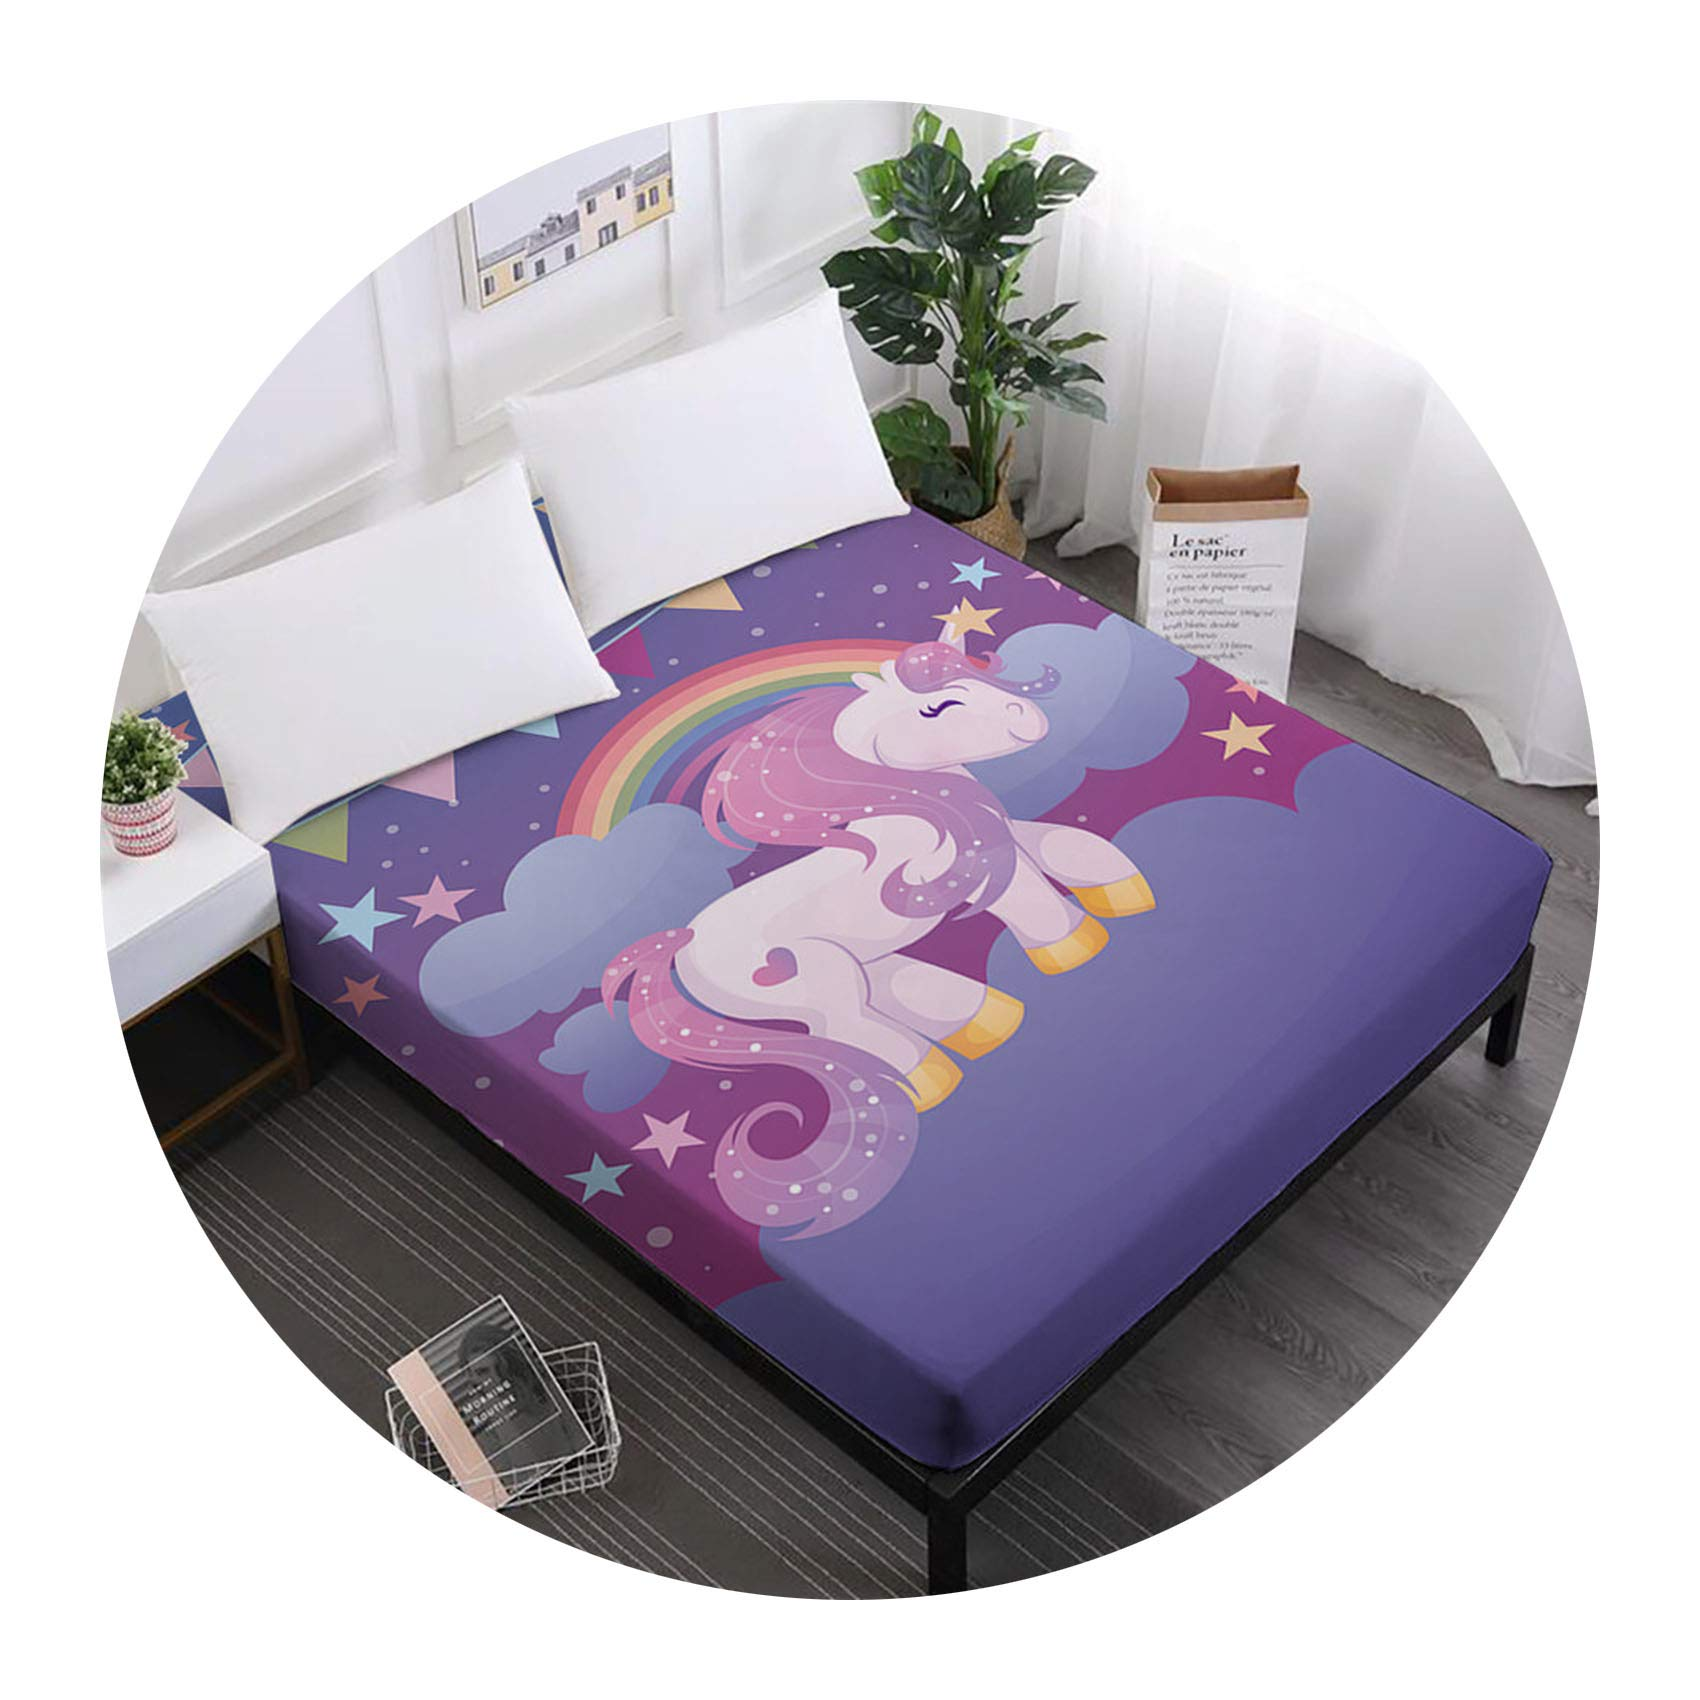 Unicorn Series Bed Sheets Cute Cartoon Print Fitted Sheet Girls Kids Sweet Sheets 100% Polyester Mattress Cover Home Decor,DCL-AS67,King